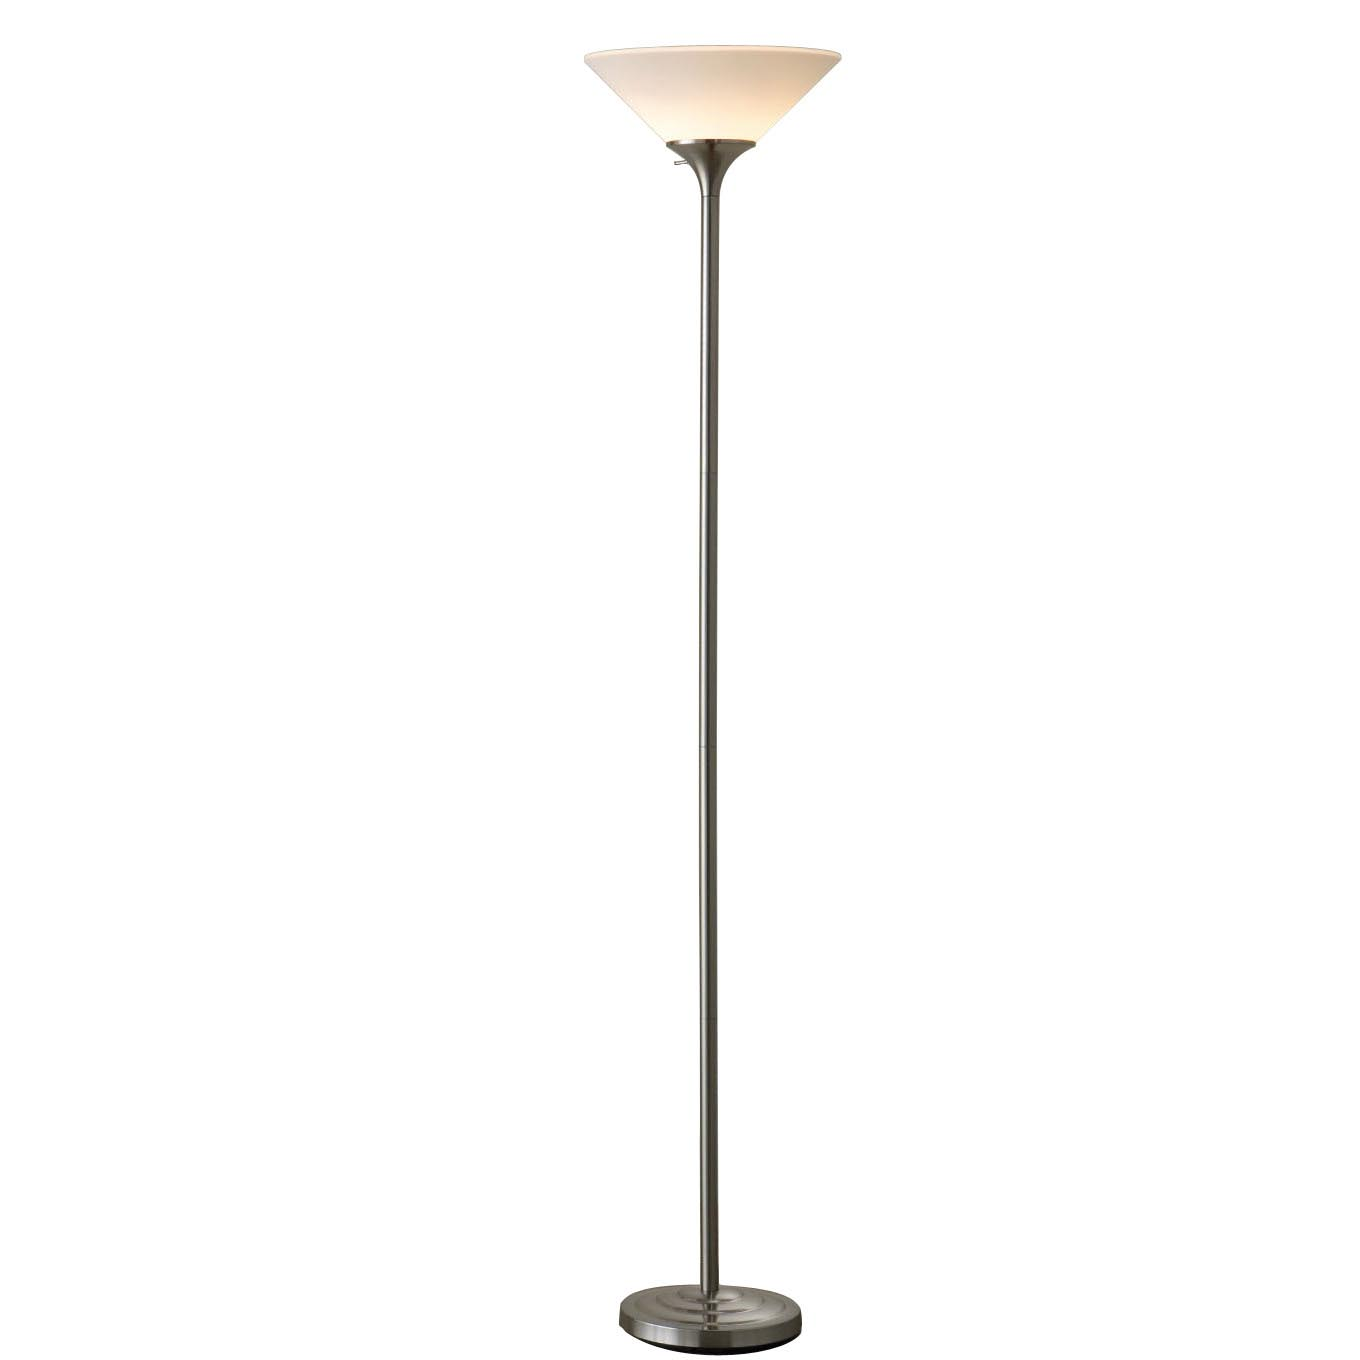 Normande lighting rustic floor lamp light fixtures for Normande rustic floor lamp